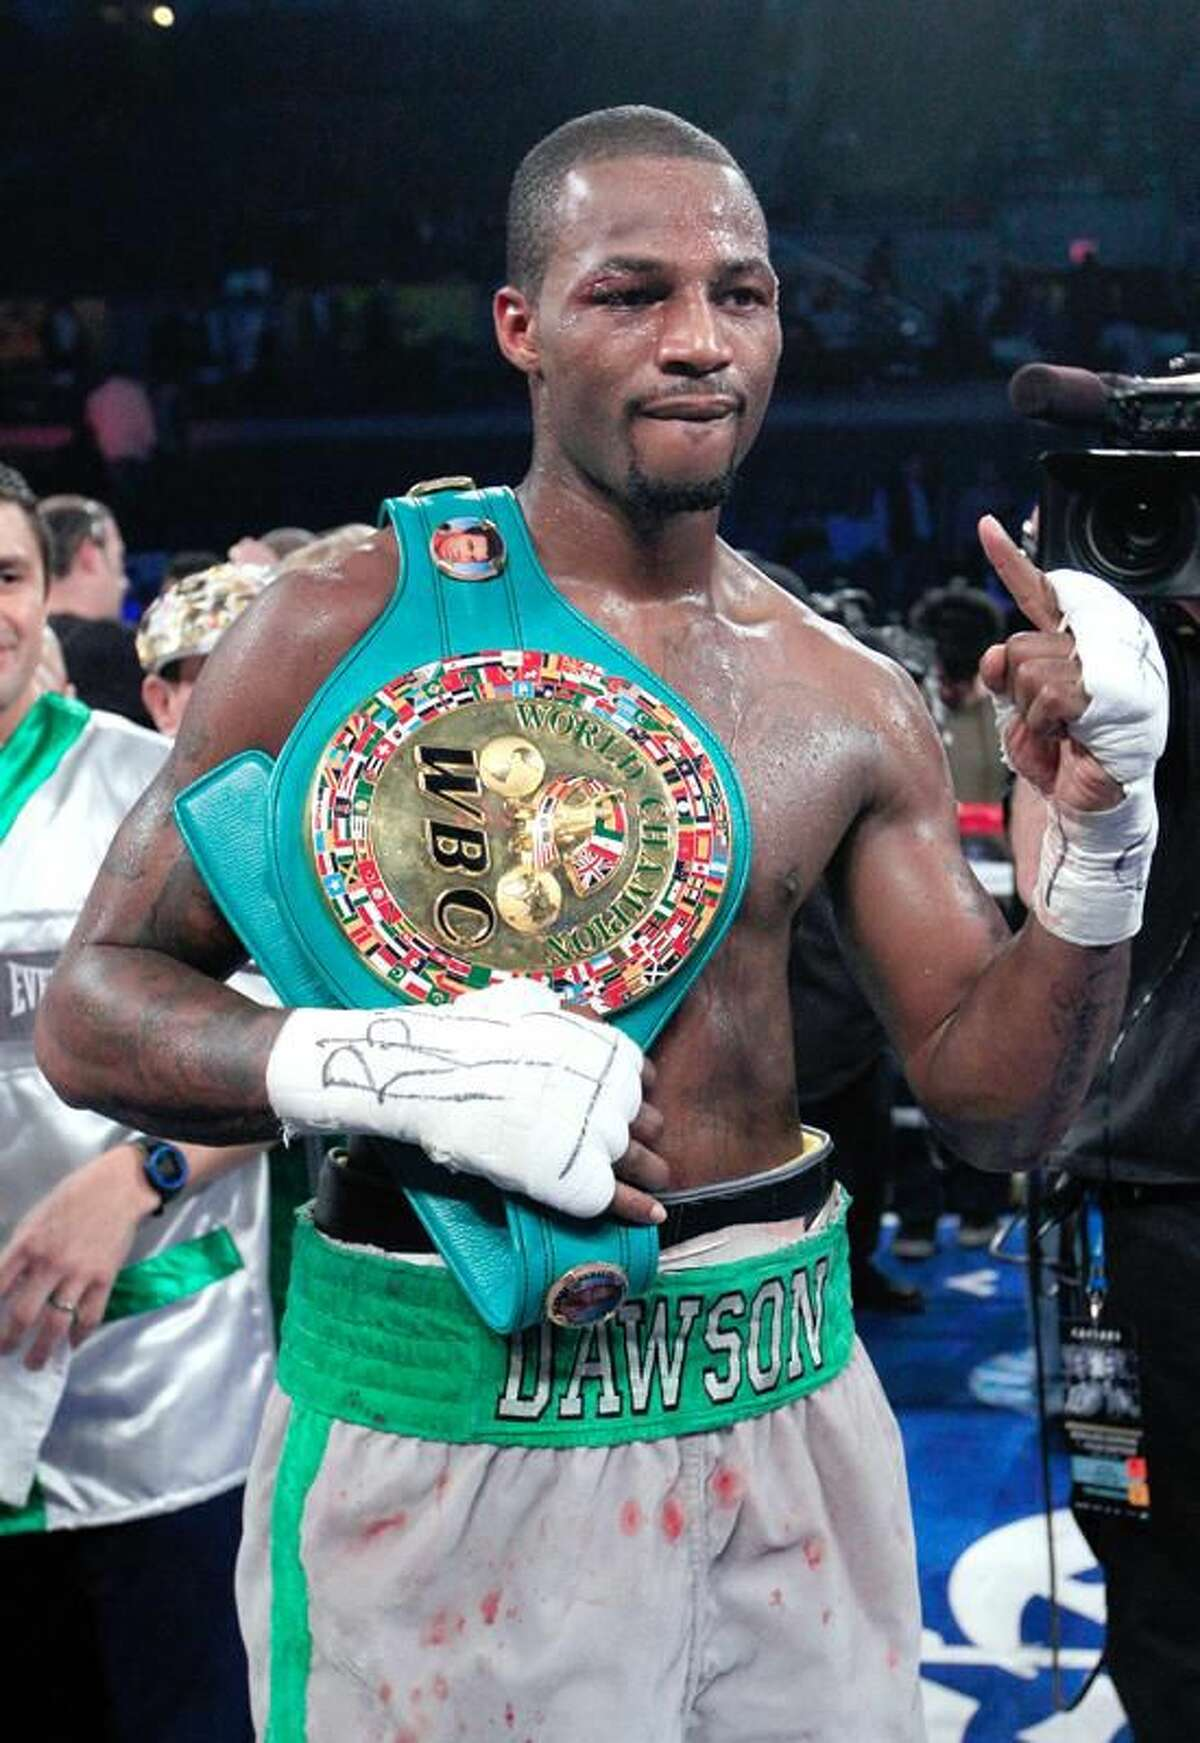 Chad Dawson holds one finger up as he poses with a championship belt after defeating Bernard Hopkins in their light heavyweight boxing match against in Atlantic City, N.J., Saturday, April 28, 2012. Dawson won a majority decision. (AP Photo/Mel Evans)